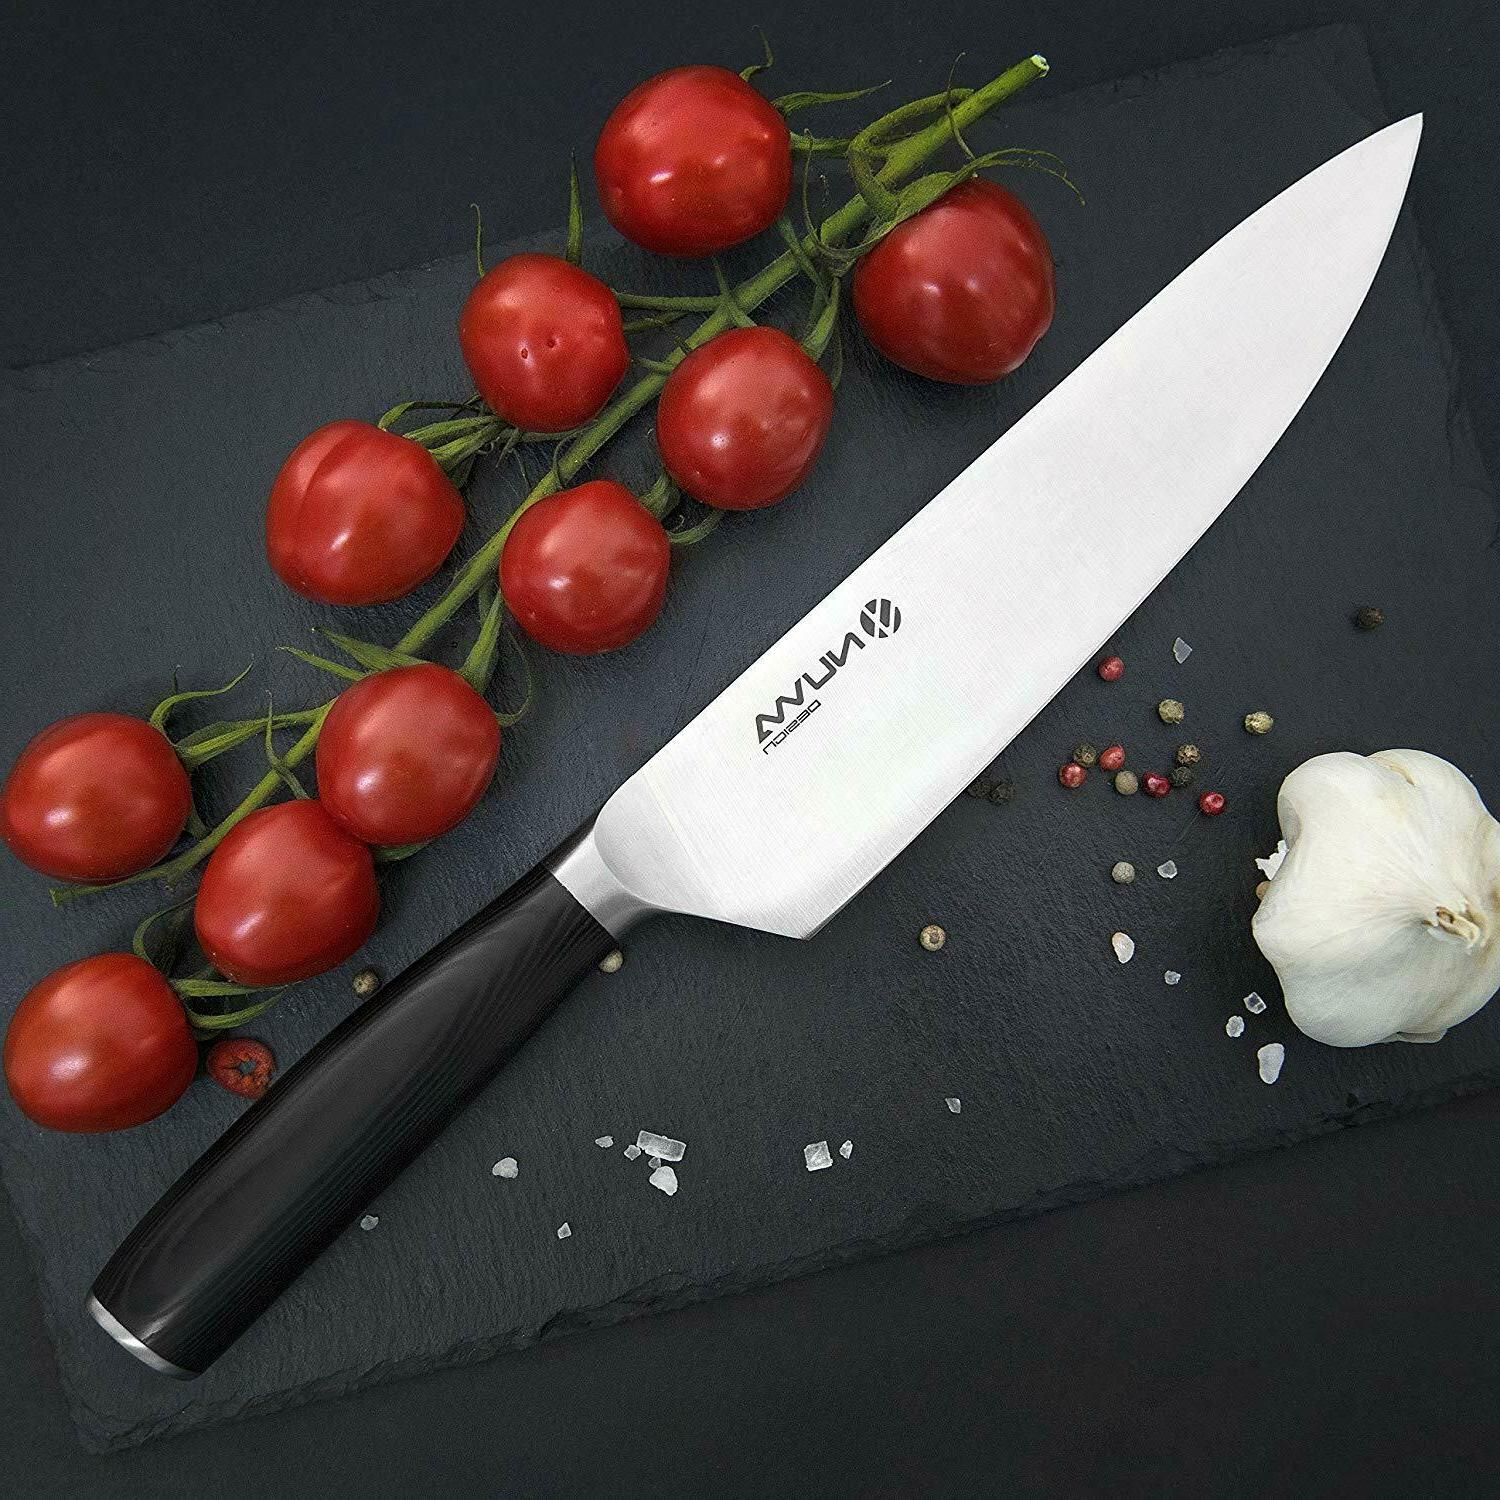 8 Inch Knife High Carbon Blade Kitchen Knife for Ch